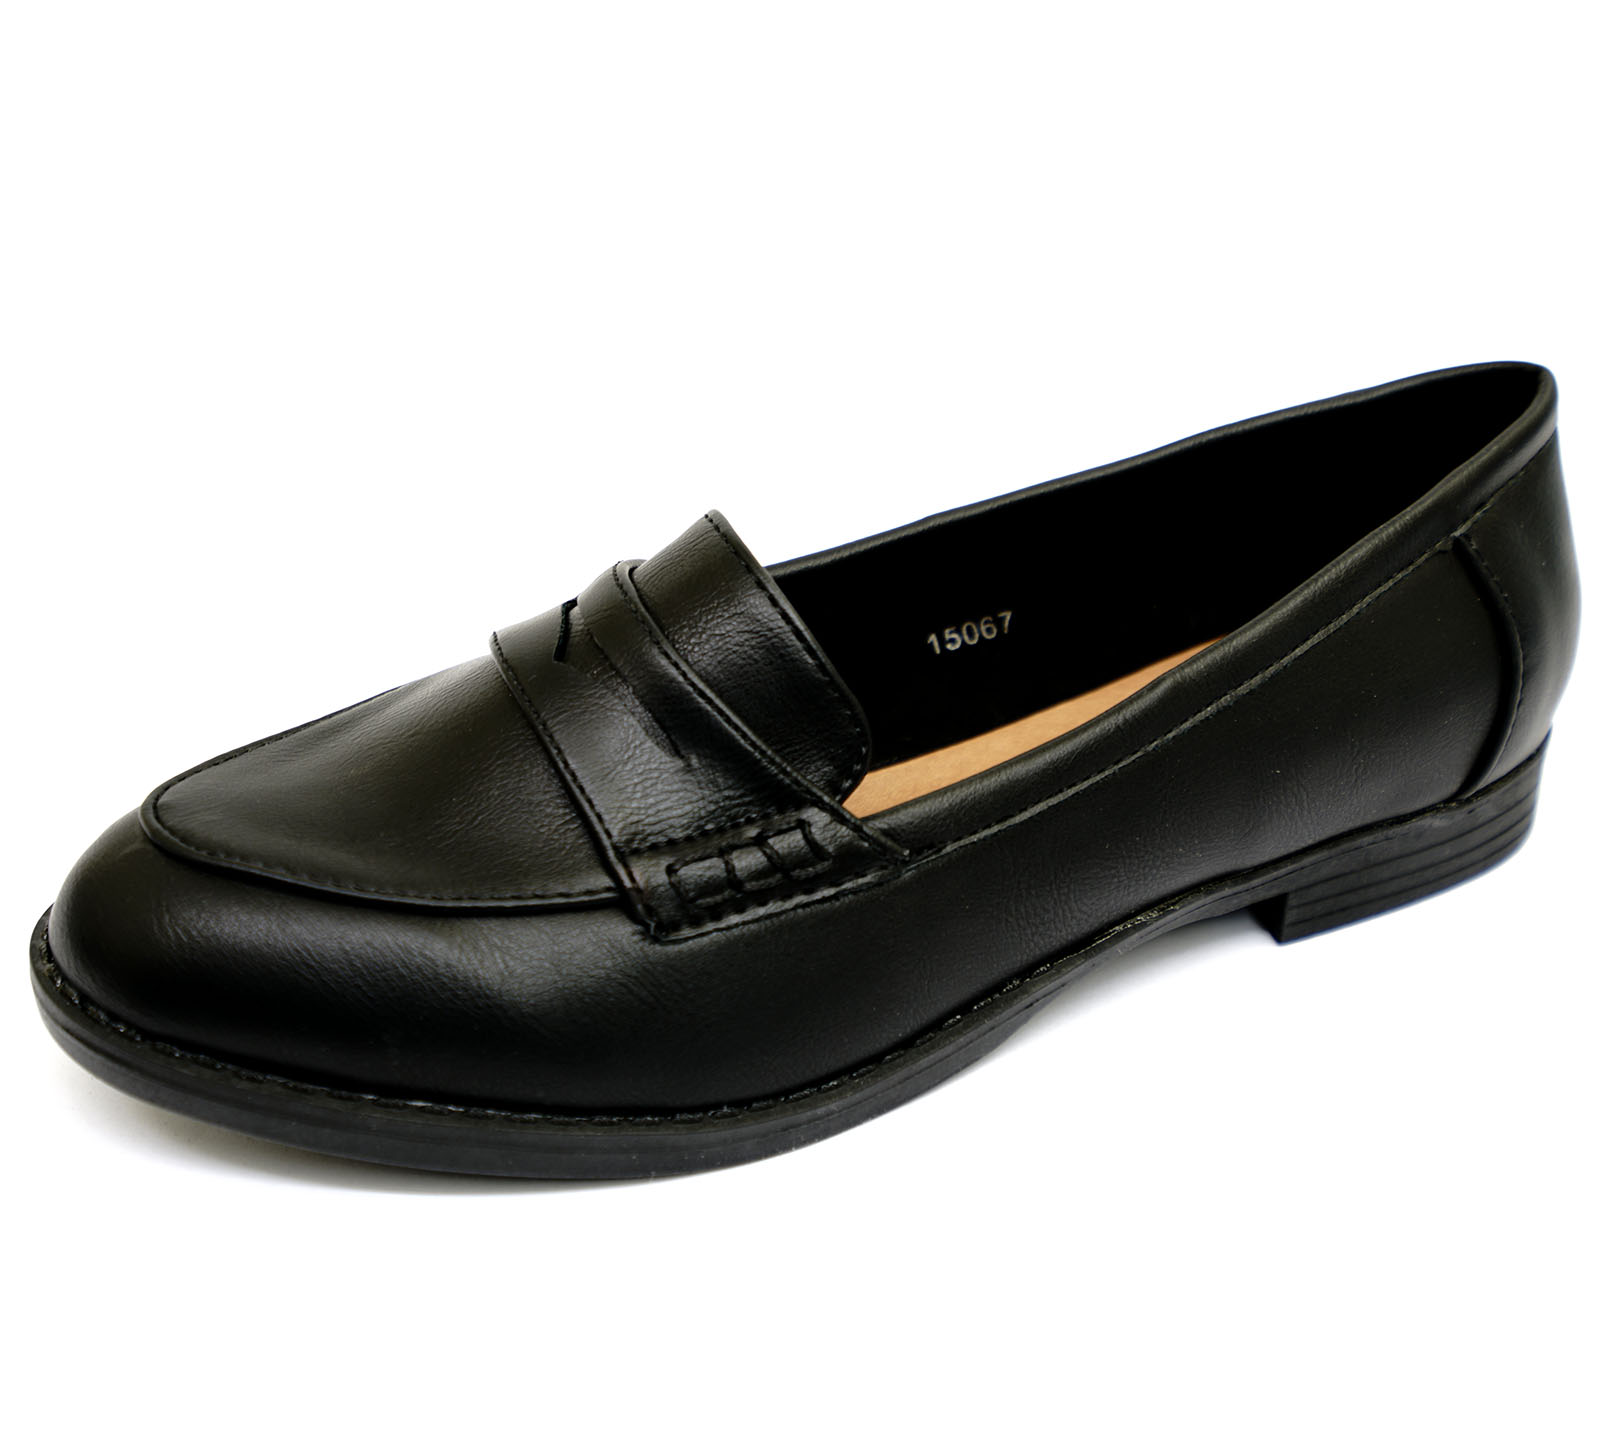 LADIES-BLACK-SLIP-ON-LOAFERS-MOCCASIN-CASUAL-SMART-WORK-COMFY-SCHOOL-SHOES-3-9 thumbnail 9